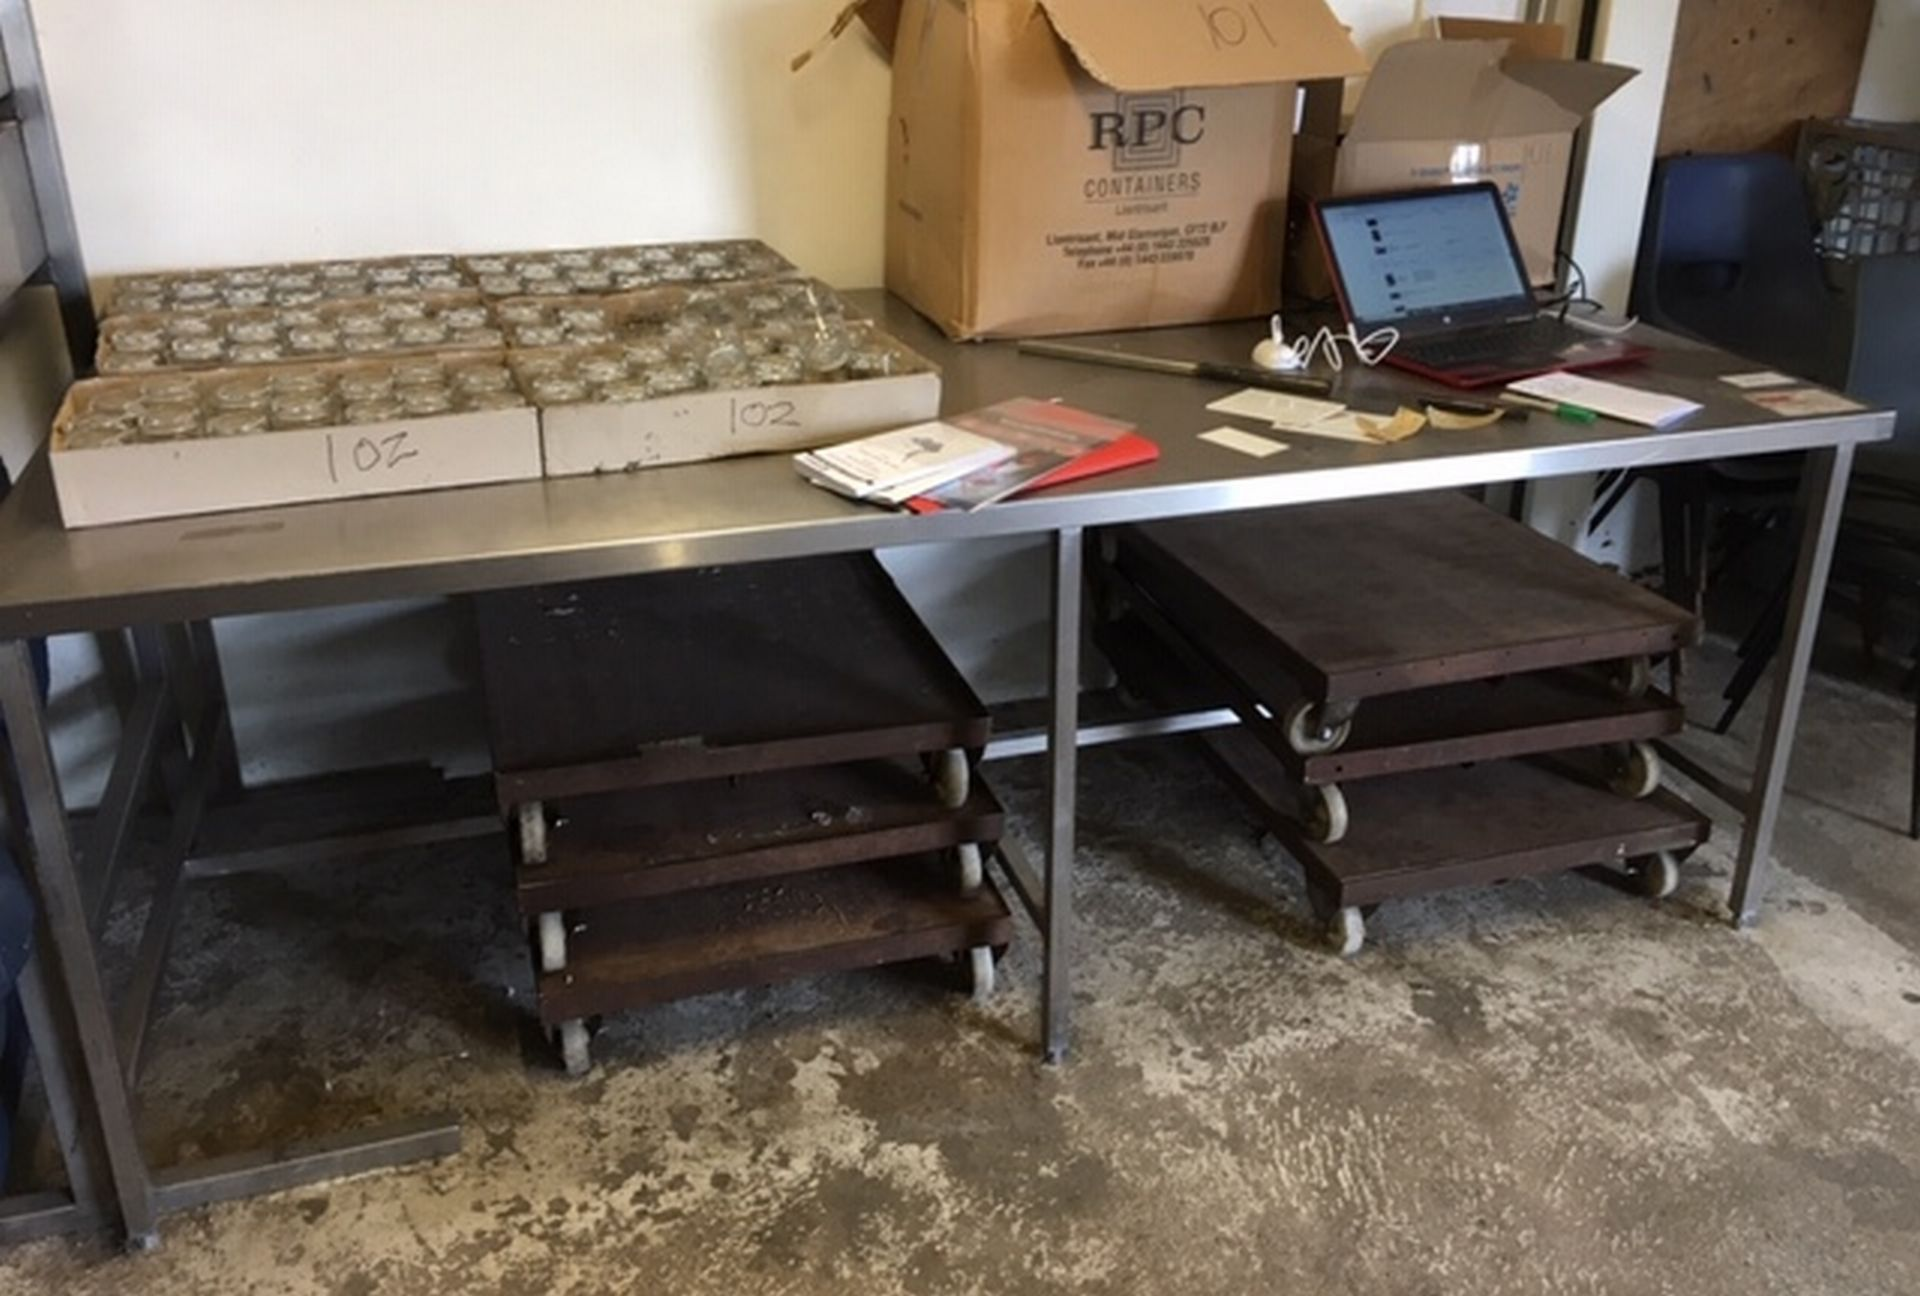 Lot 103 - Stainless Steel Table approx 8 feet x 4 feet.